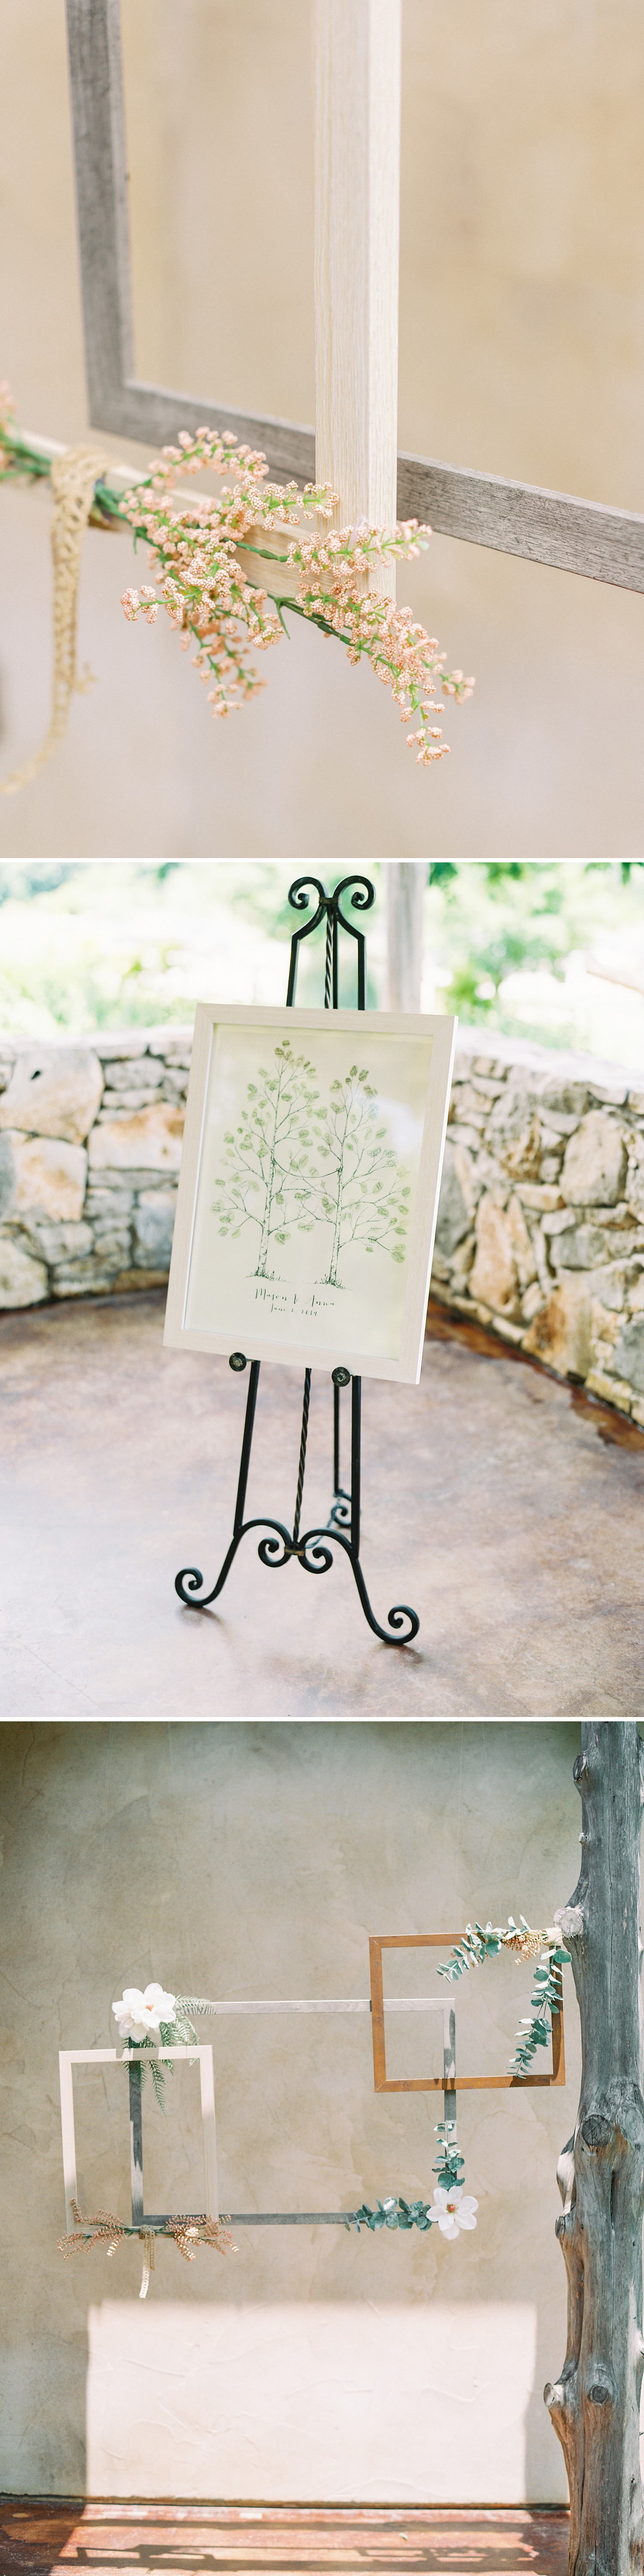 Summer Wedding Inspiration | Unique Guest Book Idea | Summer Wedding Inspiration | Fort Worth Wedding Photographer | The Brooks at Weatherford